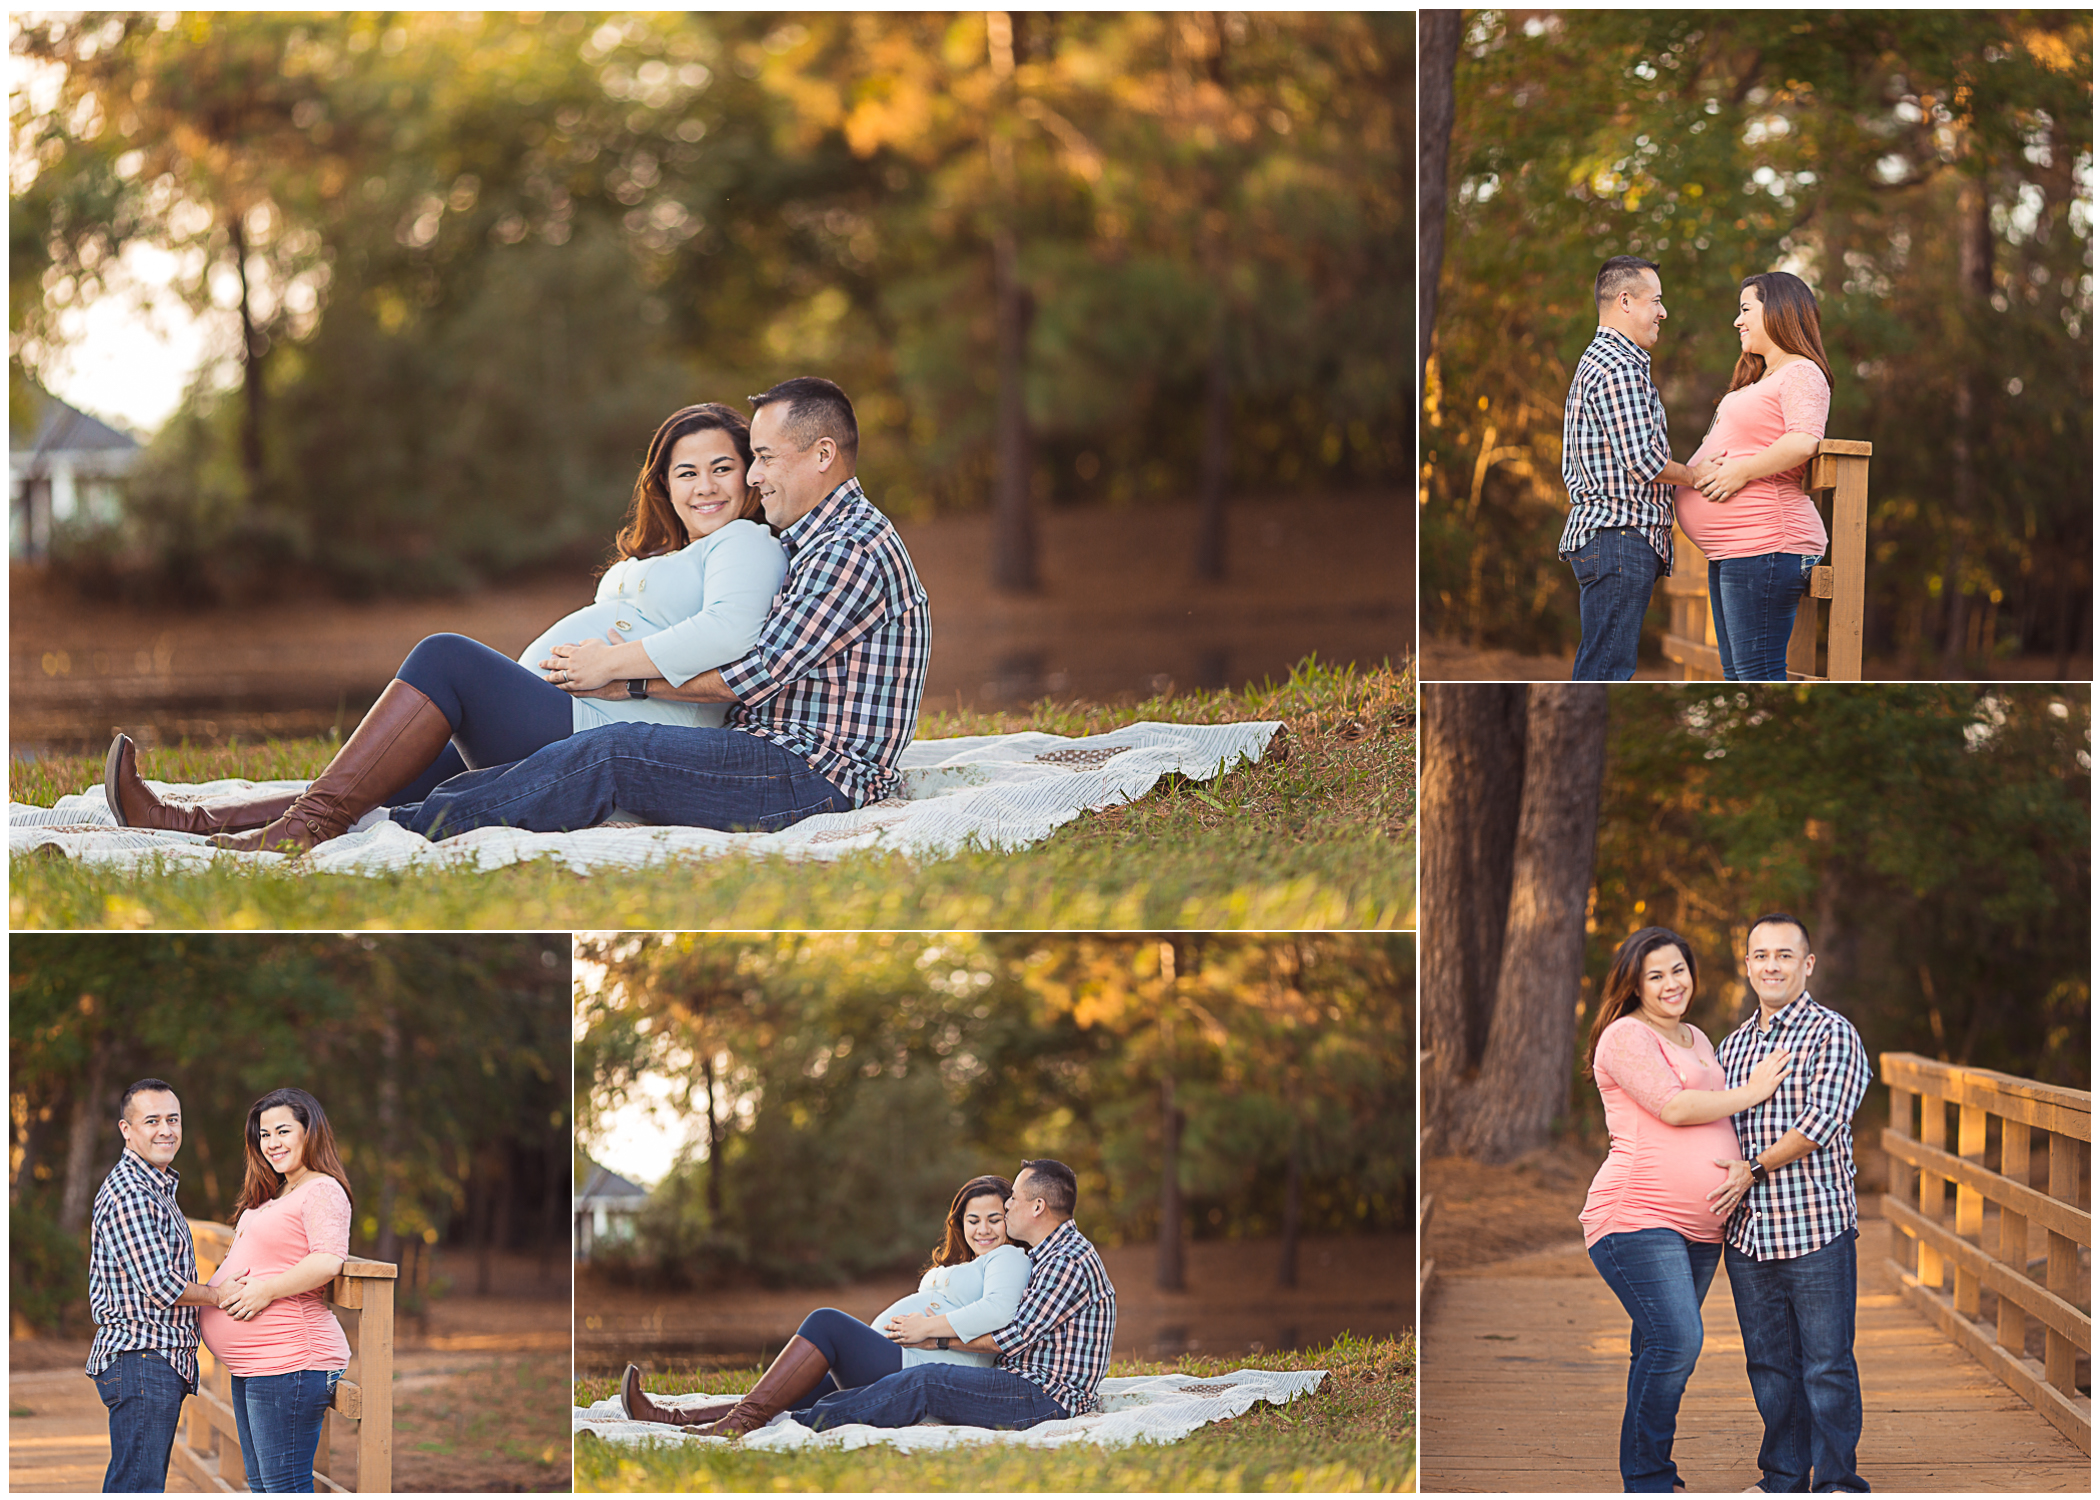 cypress, tomball, katy and houston texas couples maternity session